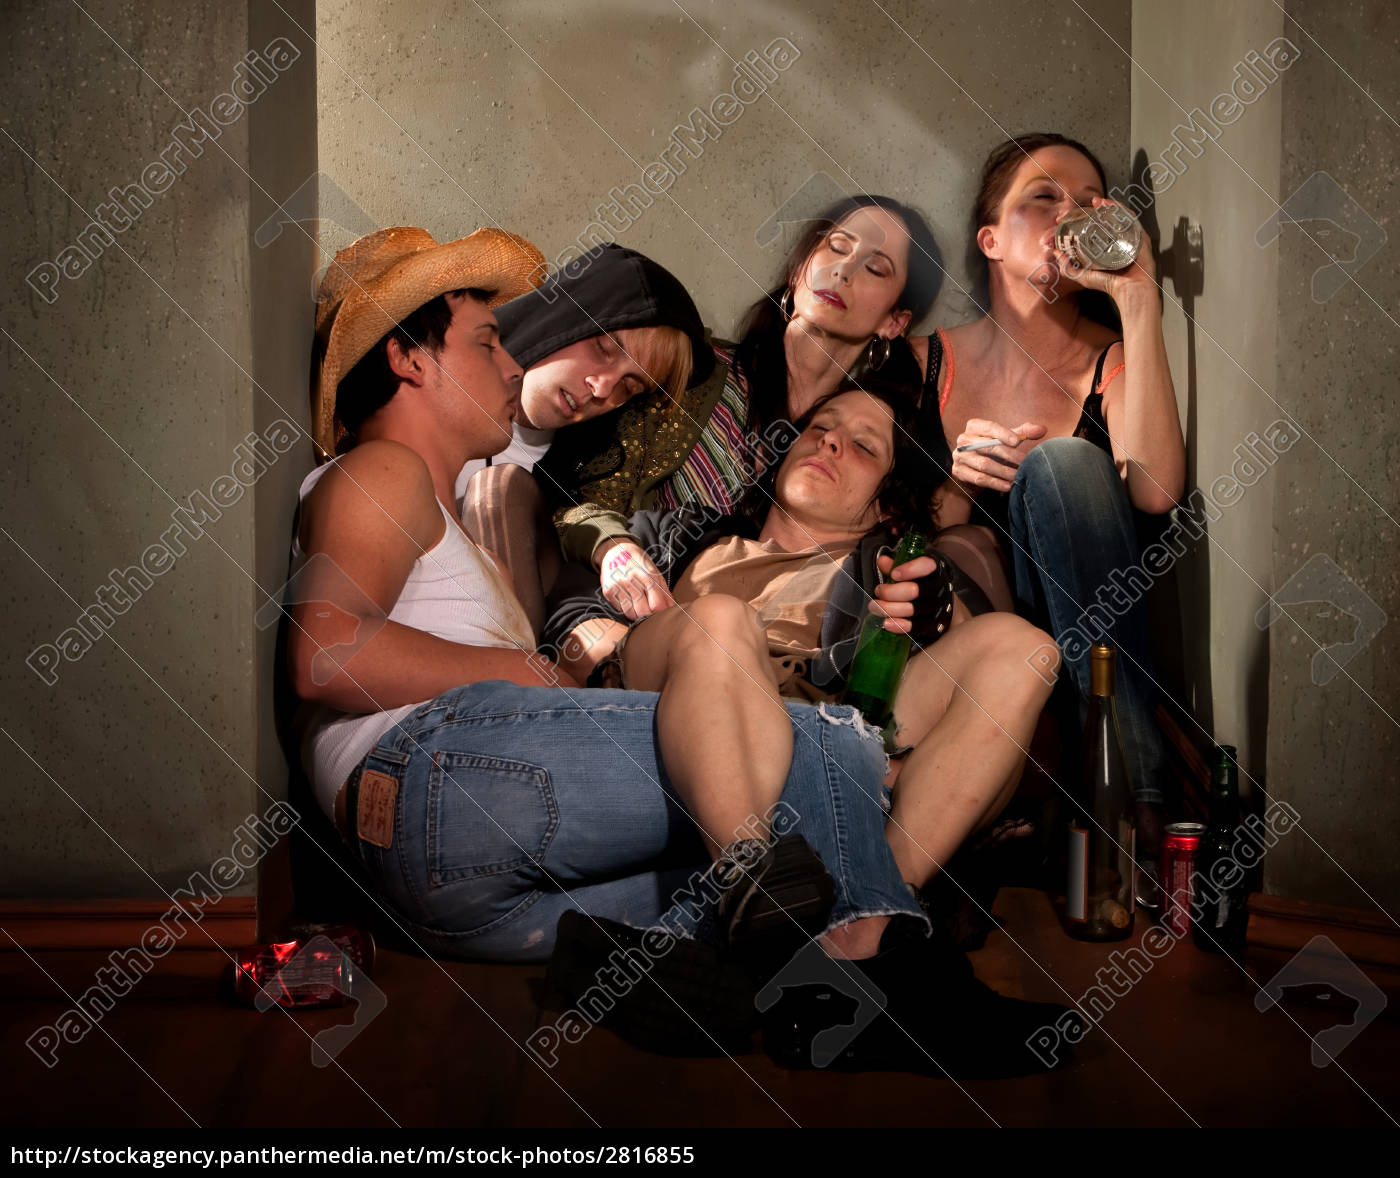 partygoers, surrounded, by, booze, bottles, in - 2816855